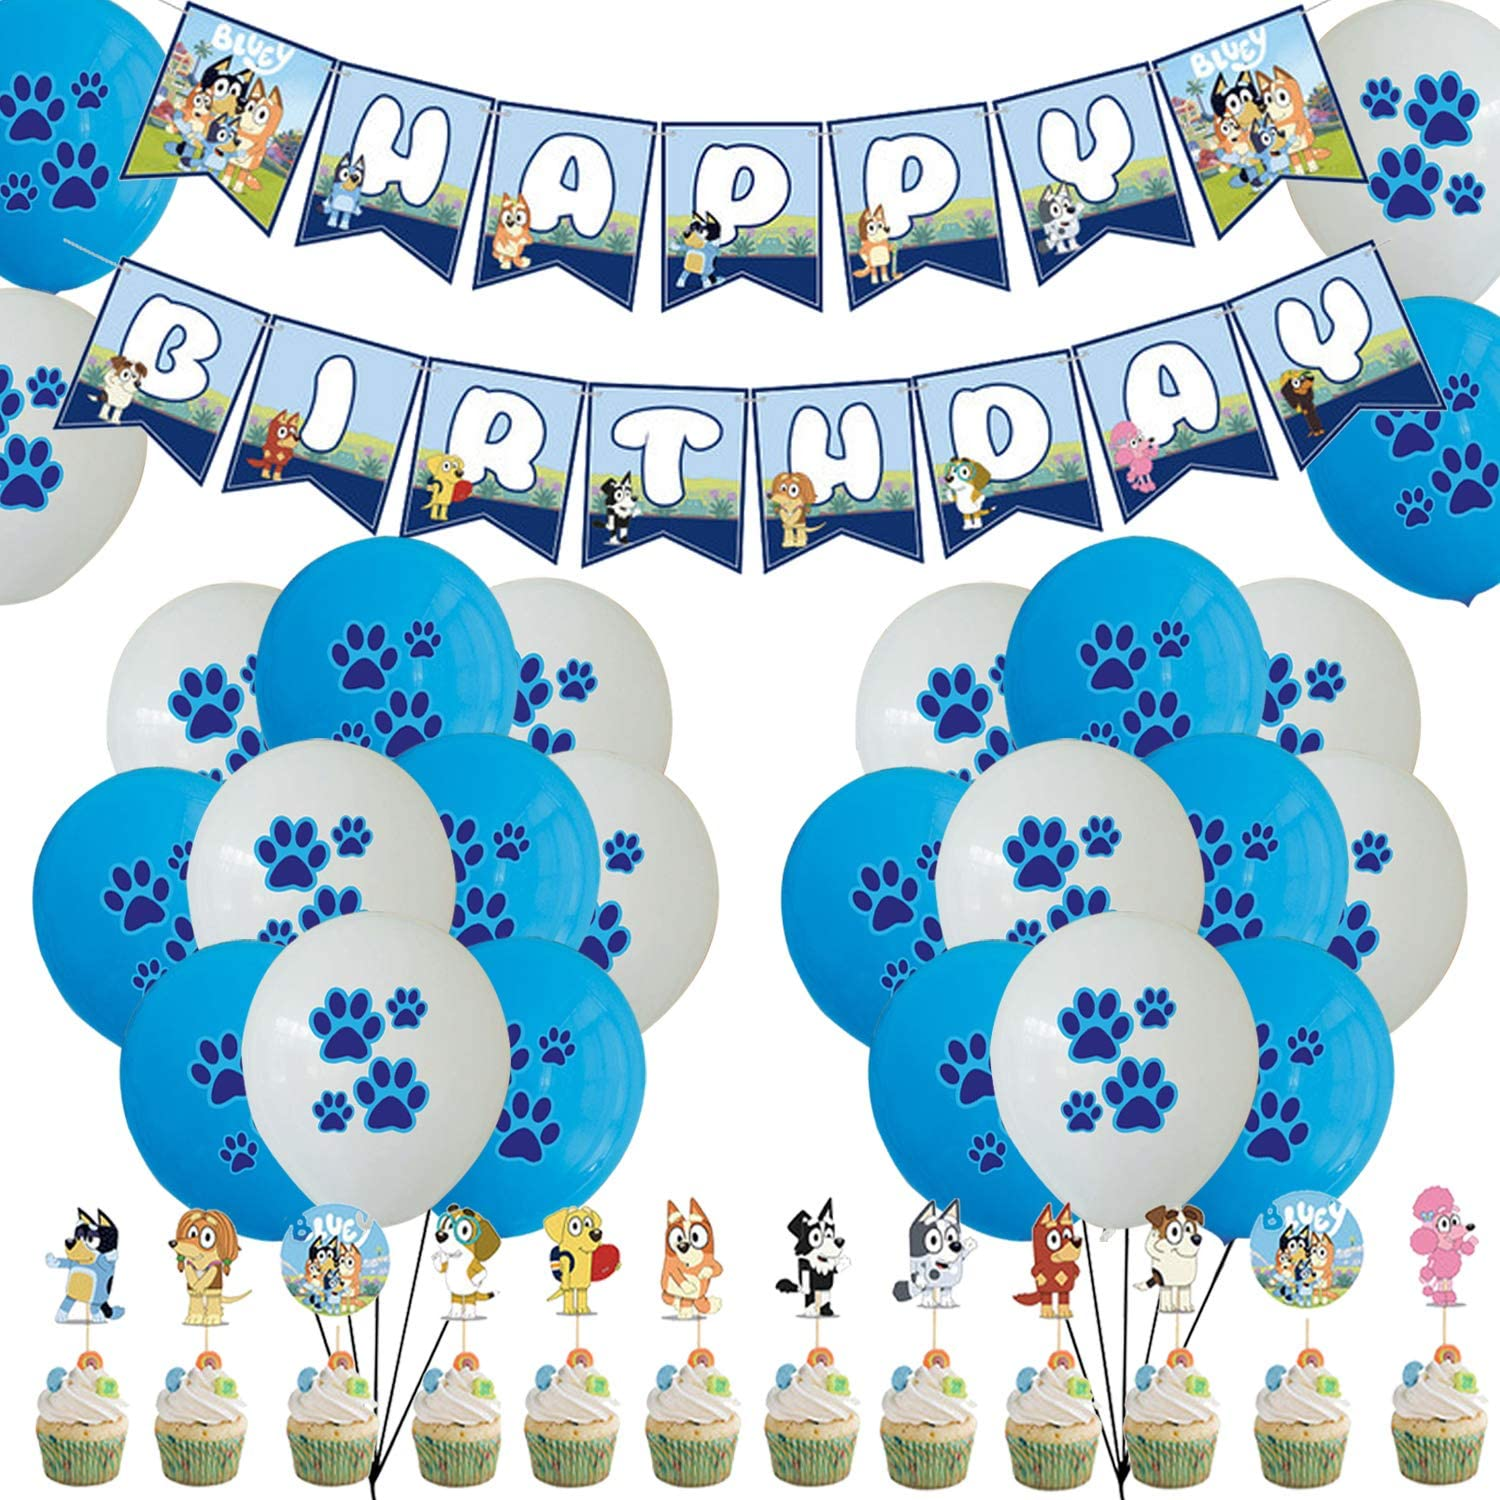 Cake Topper Balloons Banner Bluey Party Supply Decoration 26 Pieces